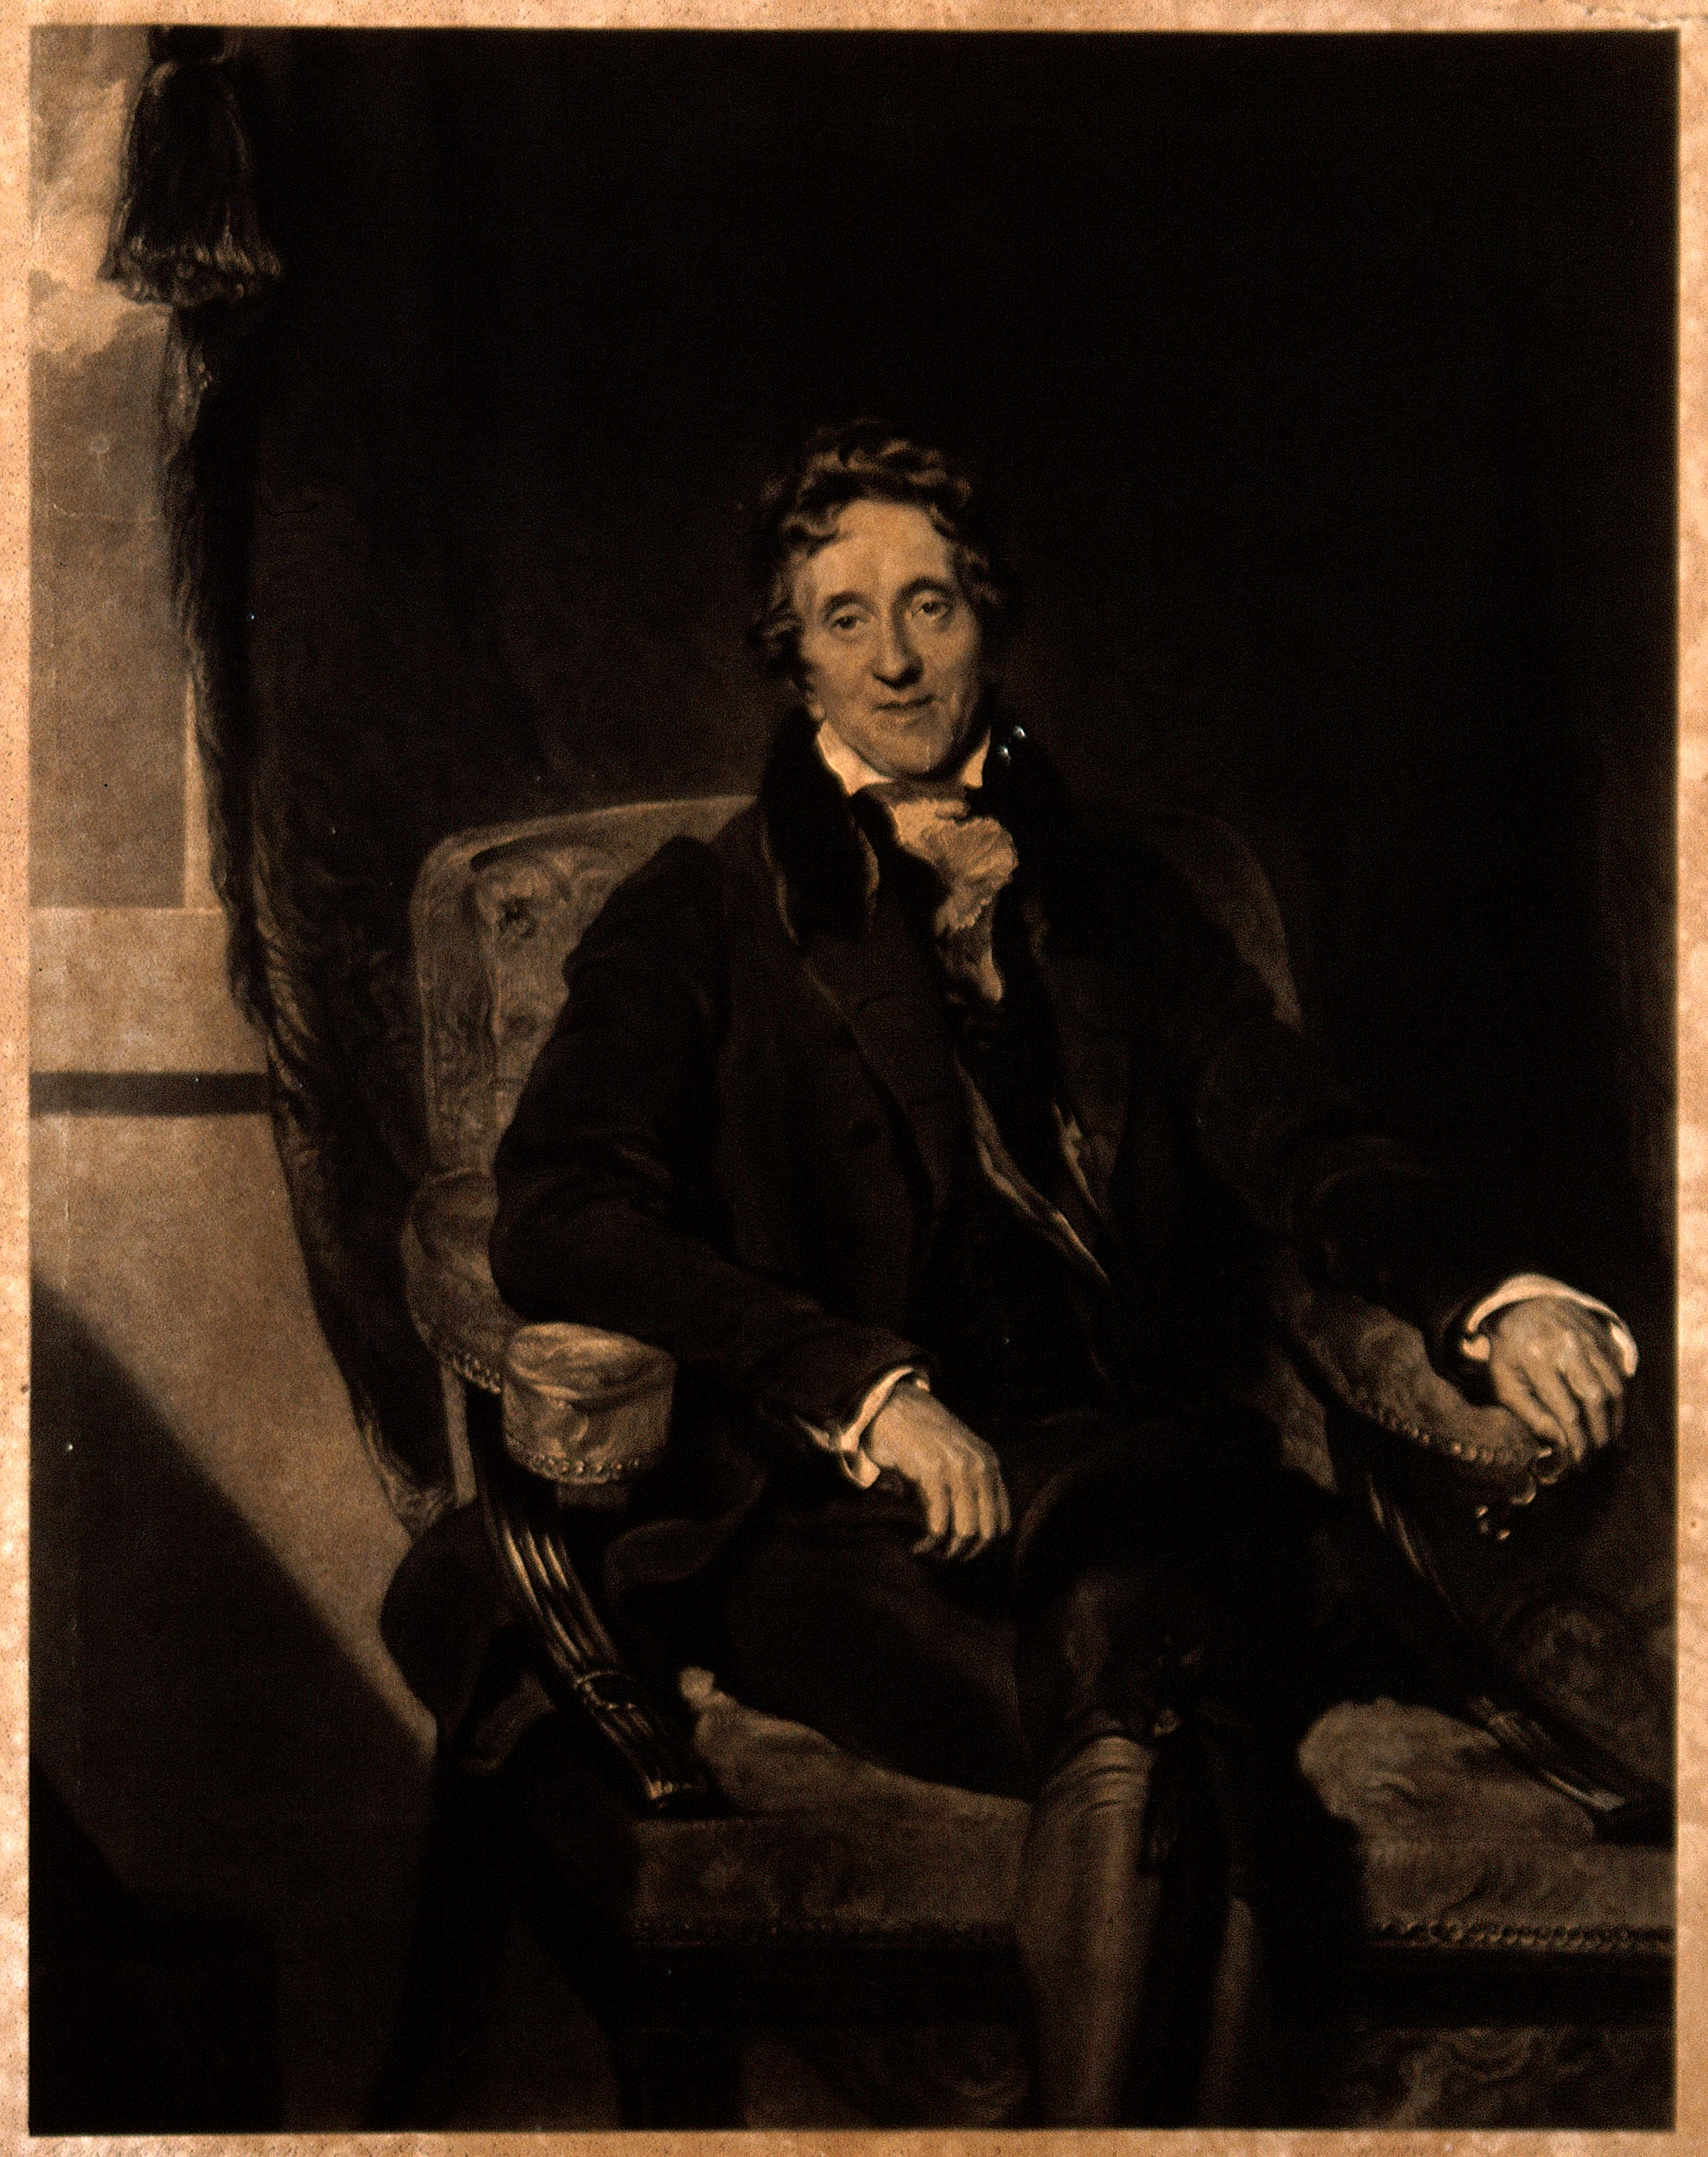 Patron of the Arts A Figure Essential to Every Page of Art's History - John Soane patron Patron of the Arts: A Figure Essential to Every Page of Art's History Patron of the Arts A Figure Essential to Every Page of Arts History John Soane